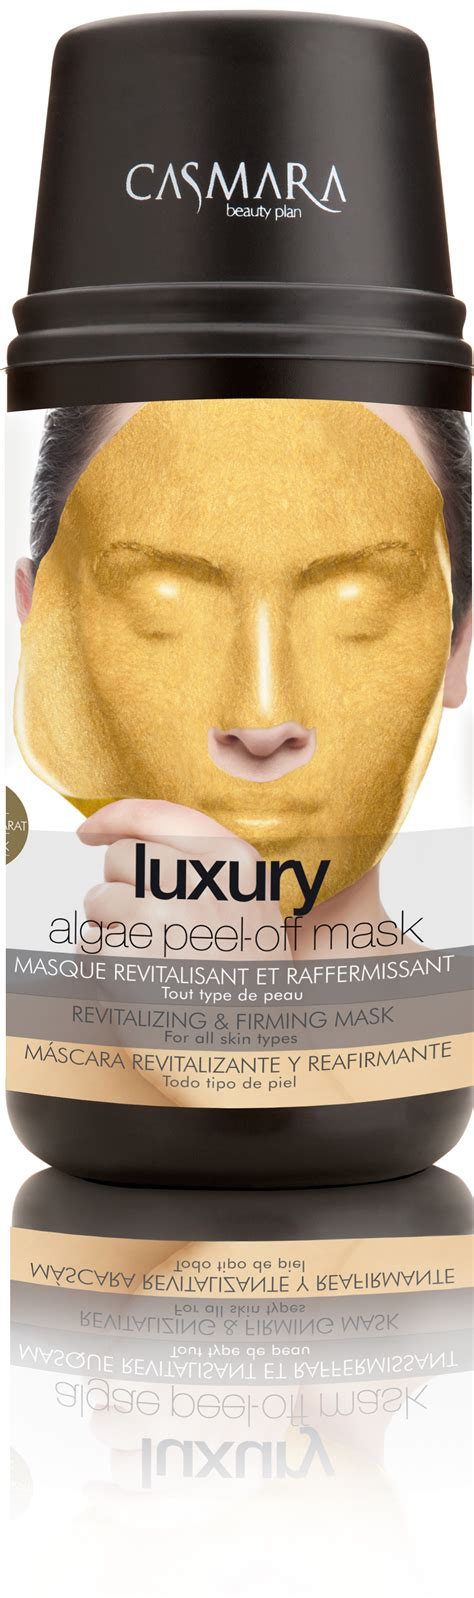 Masker Peel casmara luxury algae peel mask